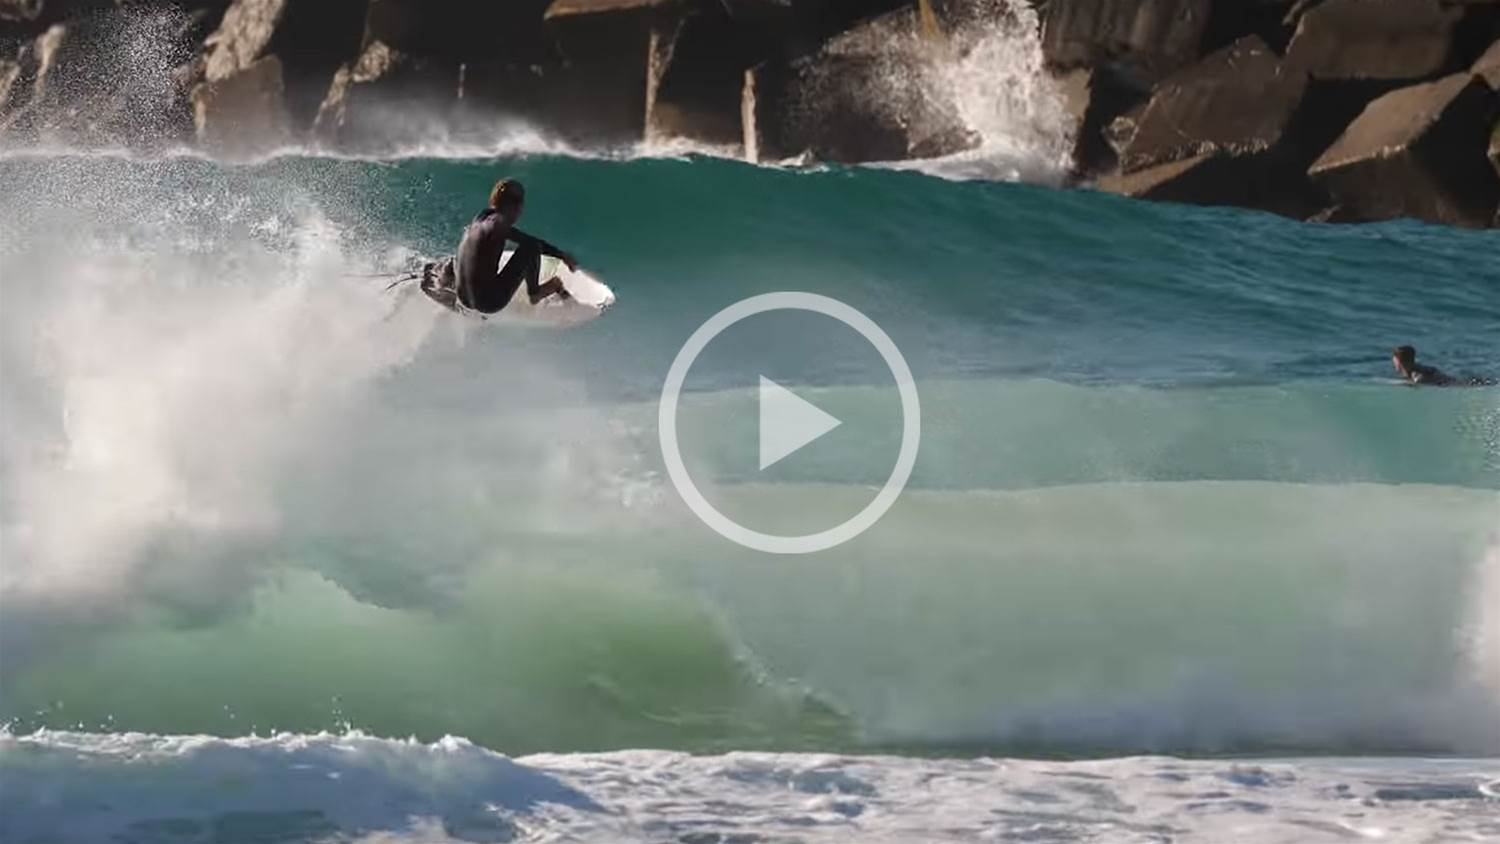 Bobby Martinez and Parker Coffin Slay the North Coast of NSW